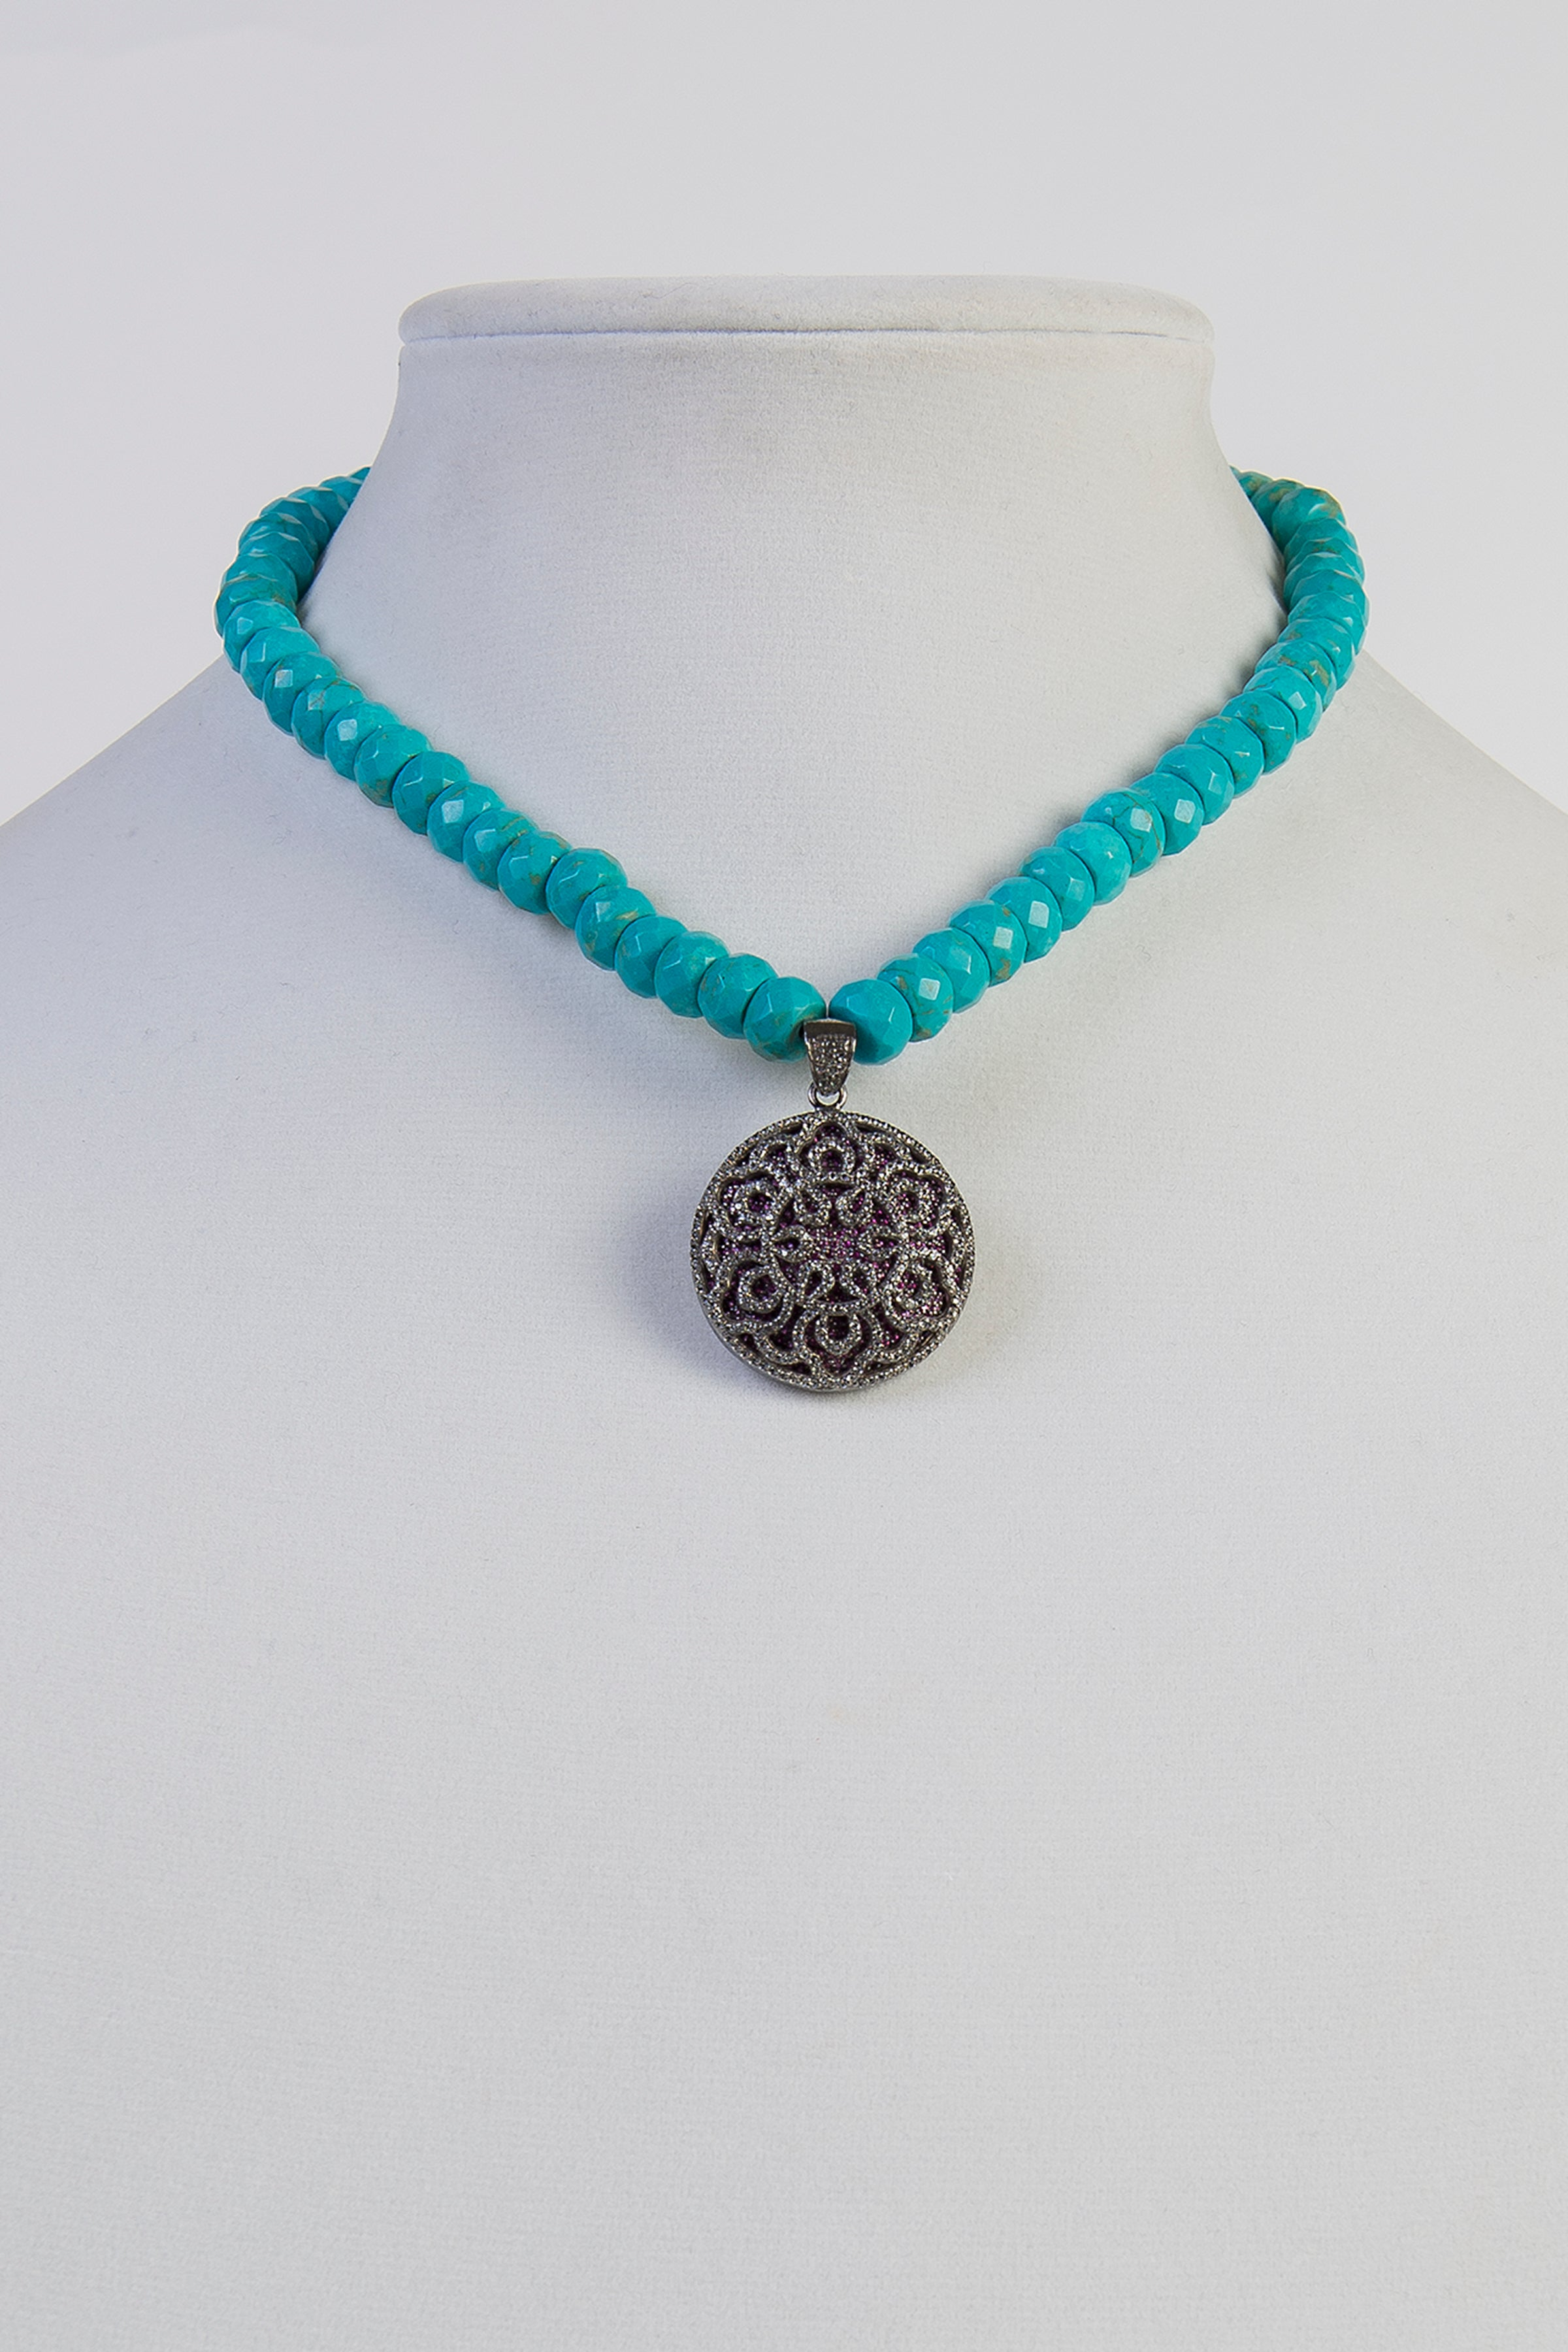 Turquoise and pave white topaz and ruby necklace